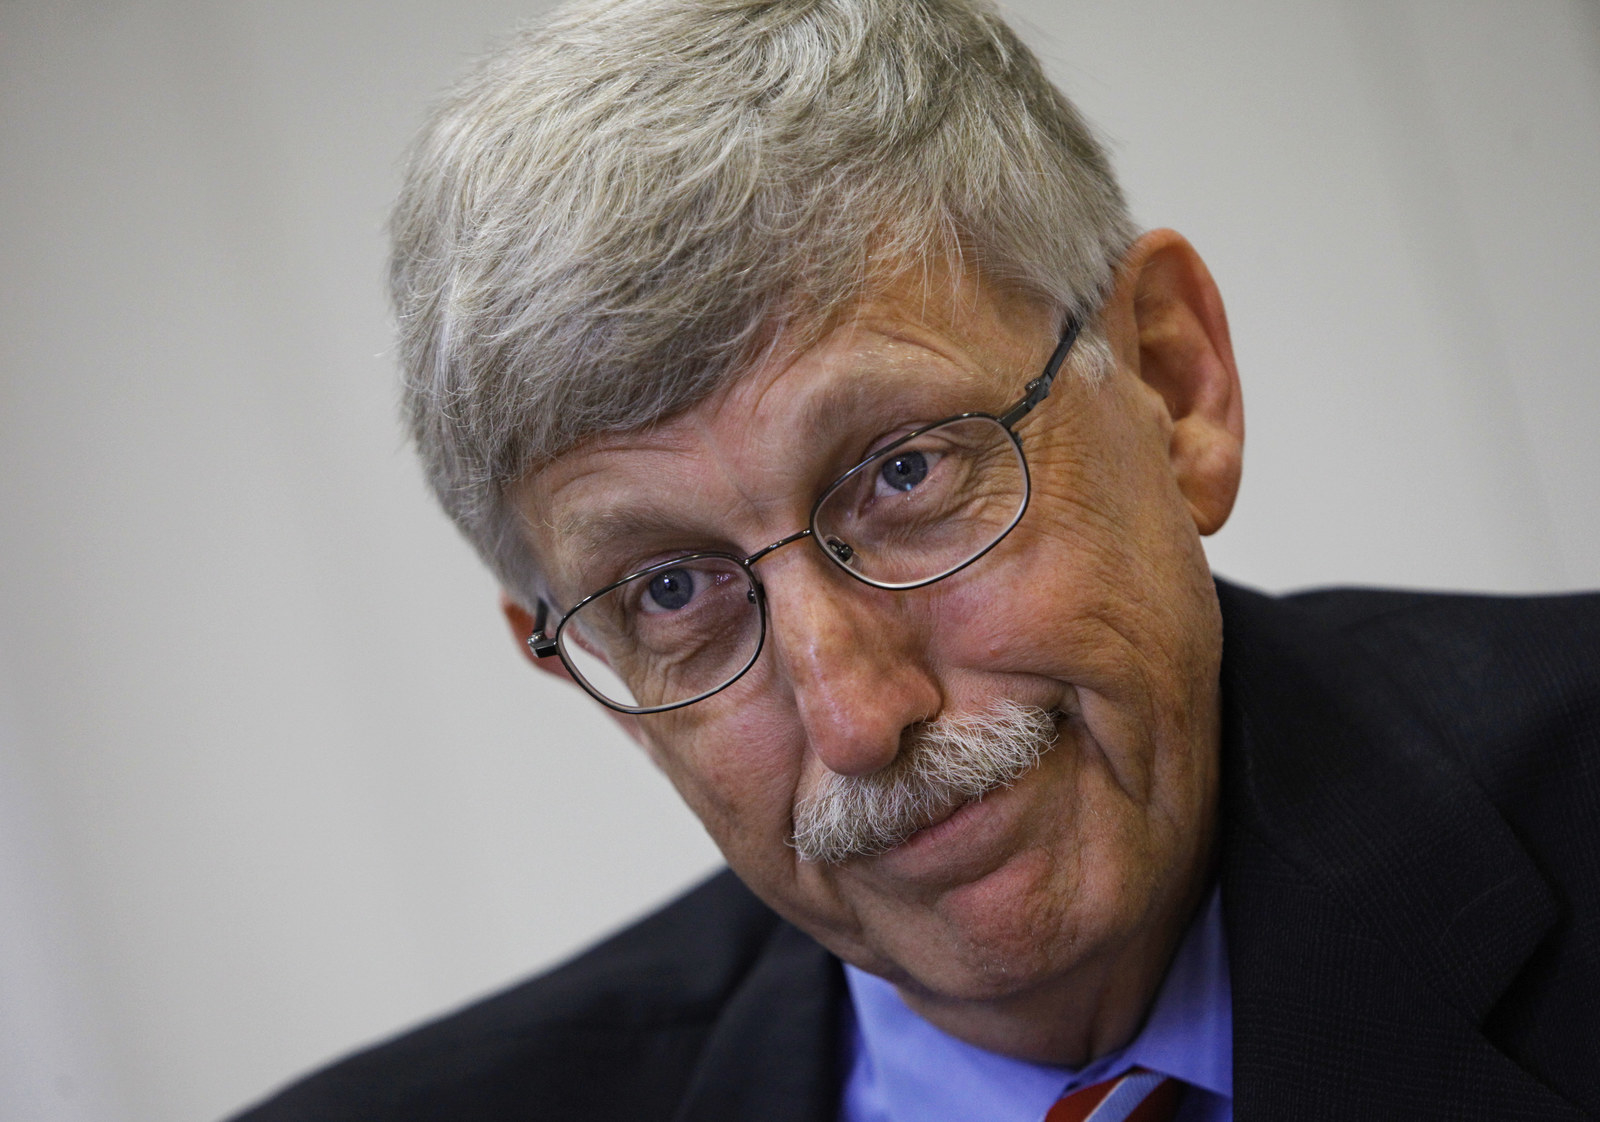 No One Should Edit The Genes Of Embryos To Make Babies, NIH Chief Says